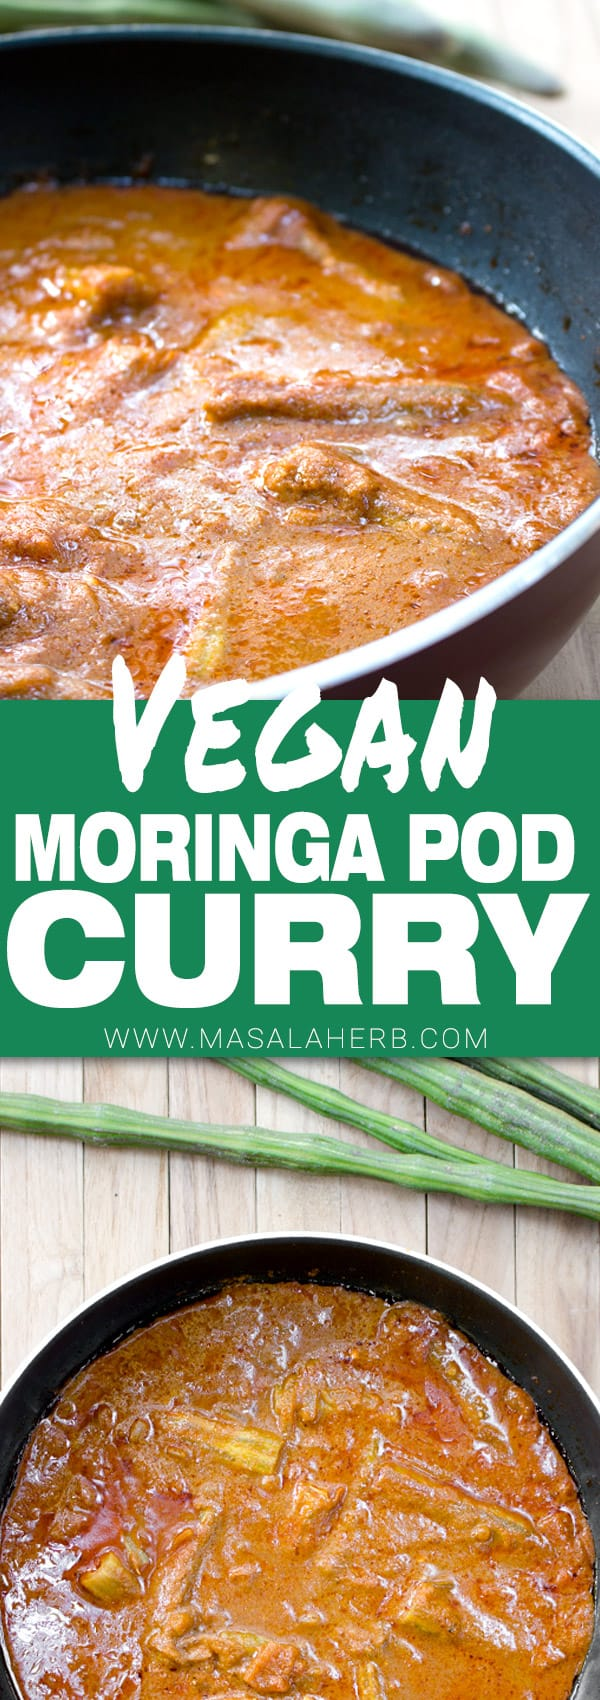 Moringa Pod Curry Recipe - Goan Drumstick Vegetable aka Moringa Pod spiced Gravy with Coconut - How to make Veg Drumstick Curry + Video www.MasalaHerb.com #curry #vegan #masalaherb #moringa